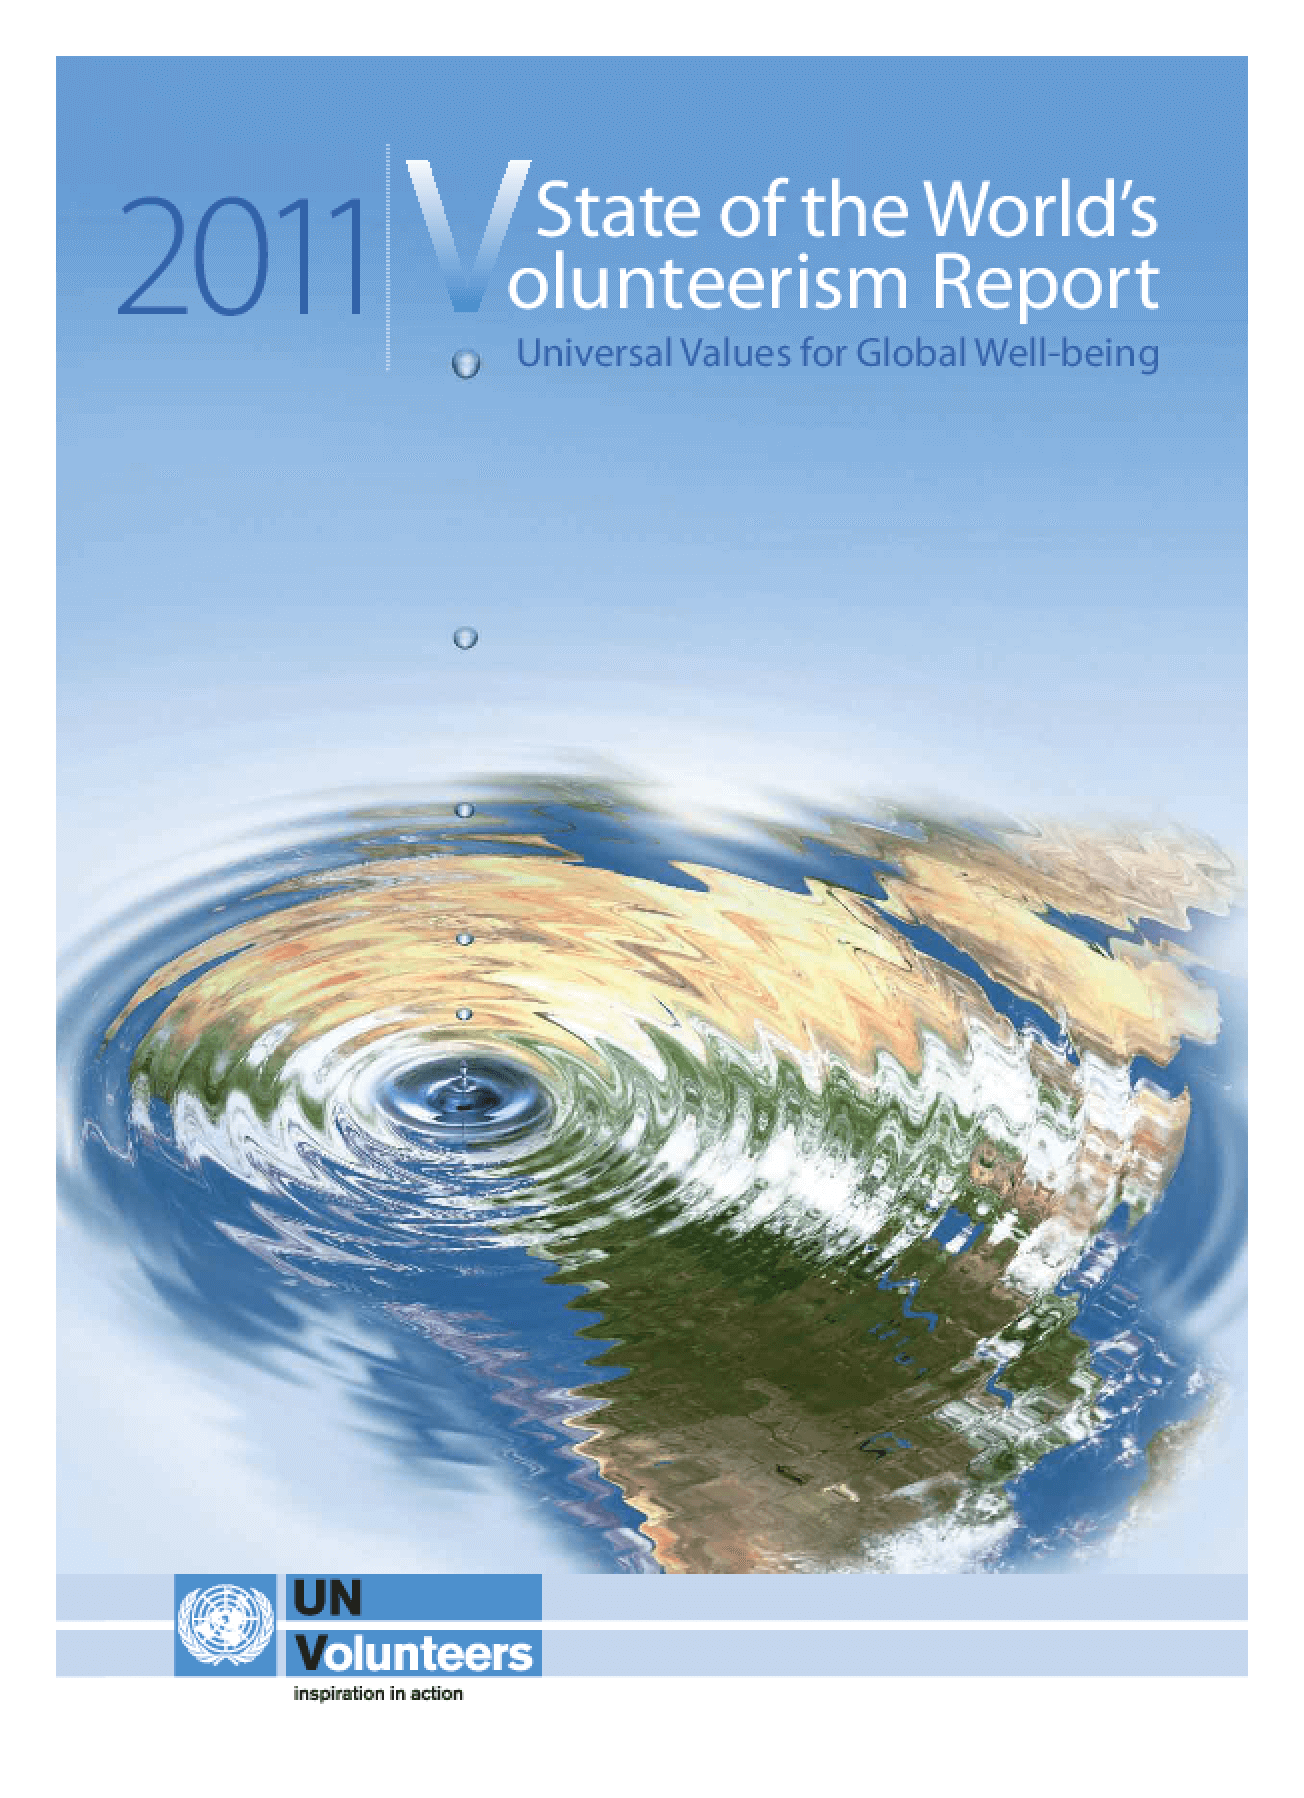 State of the World's Volunteerism Report: Universal Values for Global Well-being